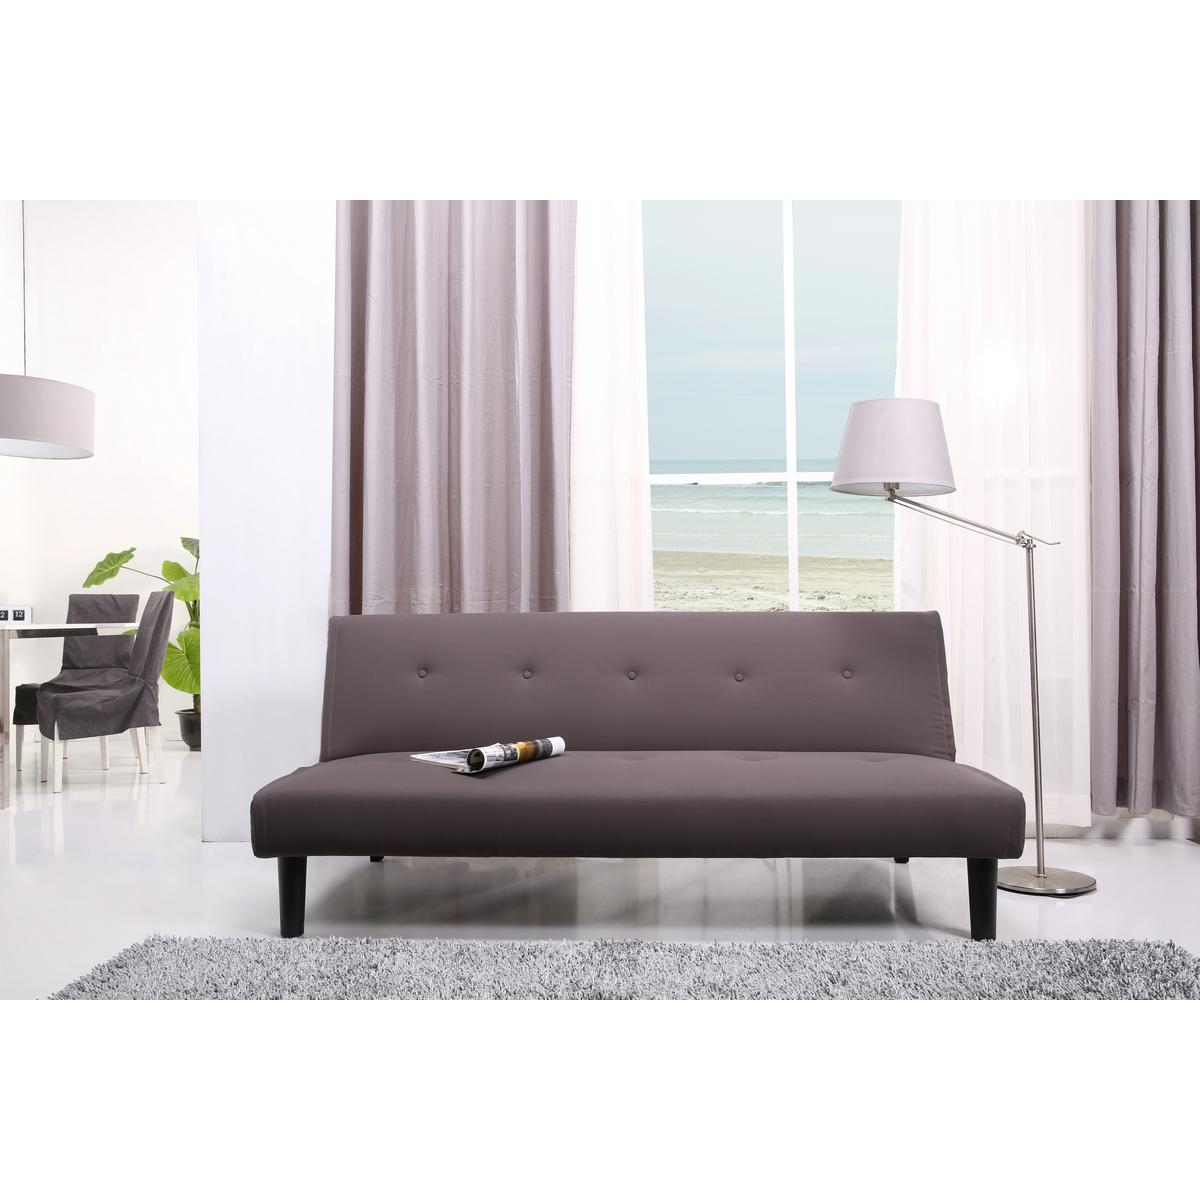 schlafsofa schlafcouch klappcouch klappsofa sofa couch sitzgarnitur stoff braun ebay. Black Bedroom Furniture Sets. Home Design Ideas